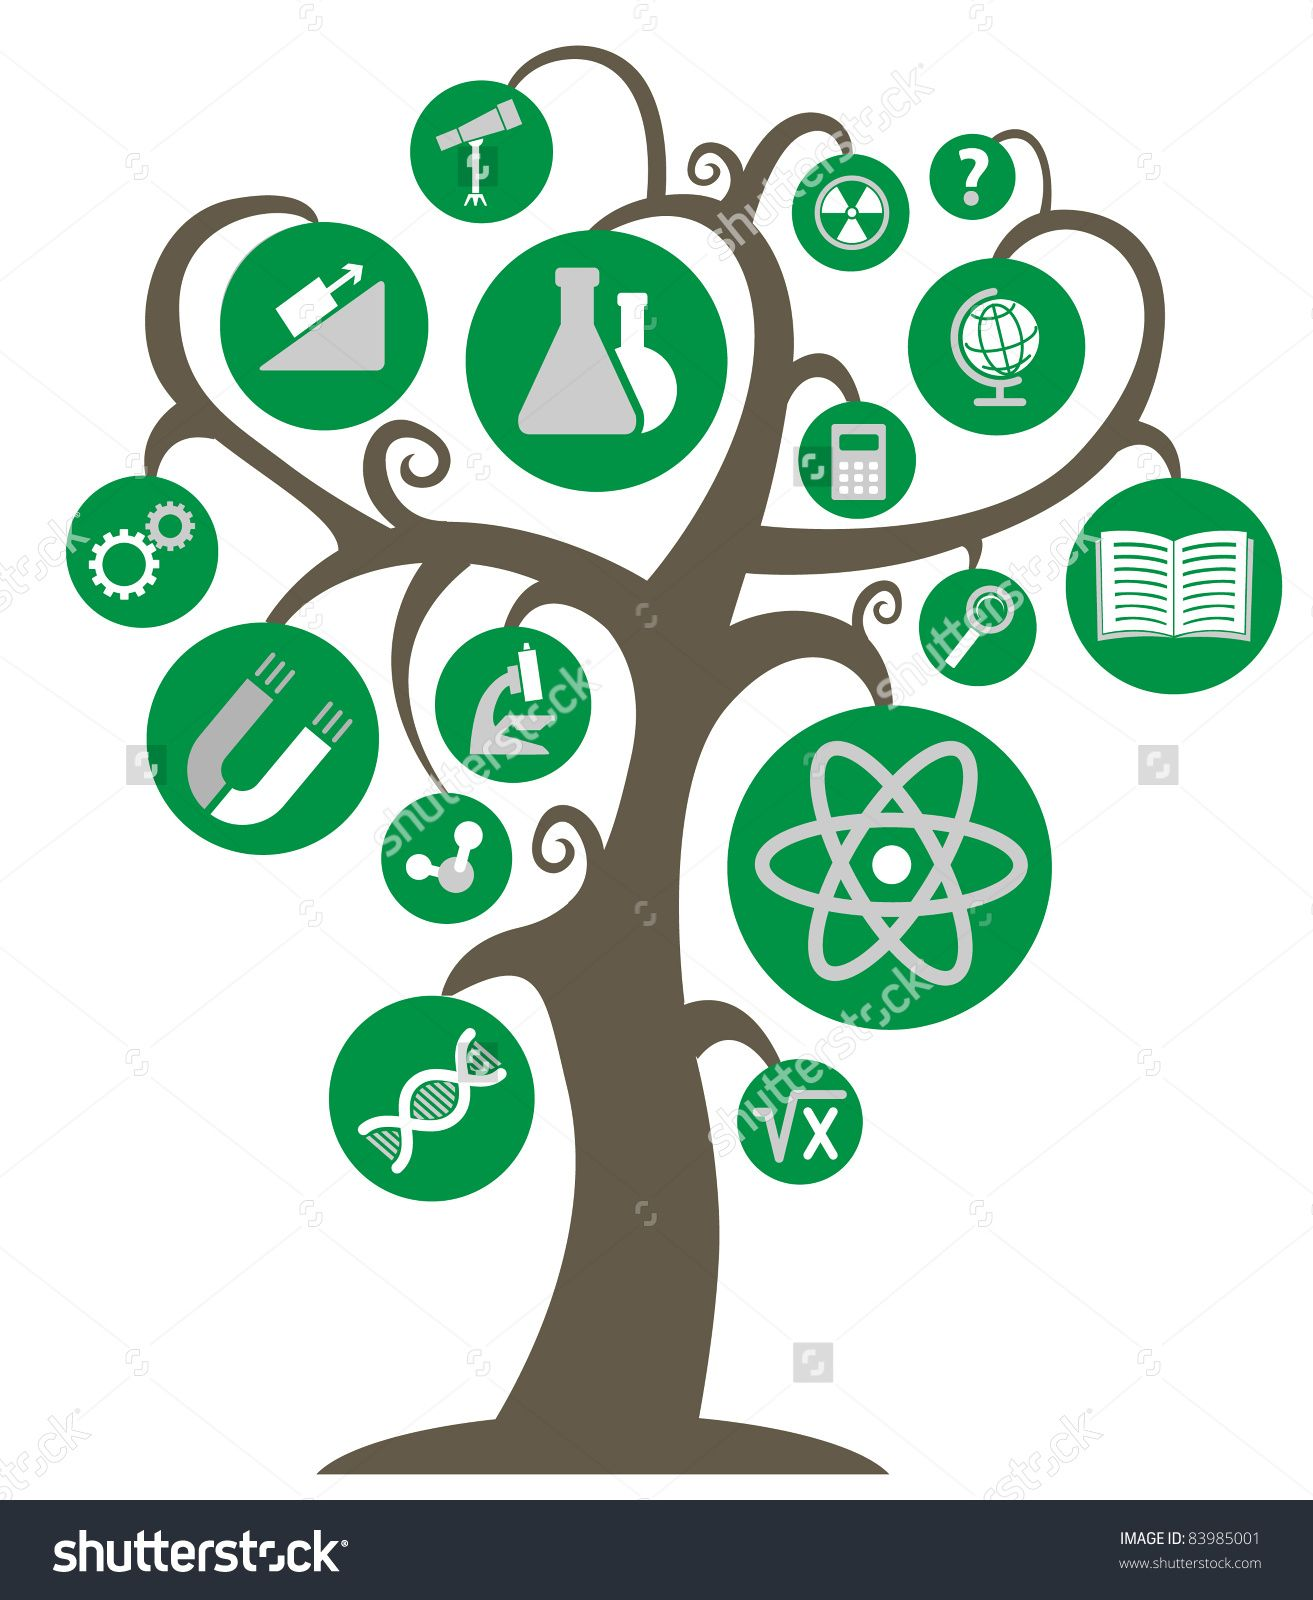 the tree of knowledge with the symbols of science and